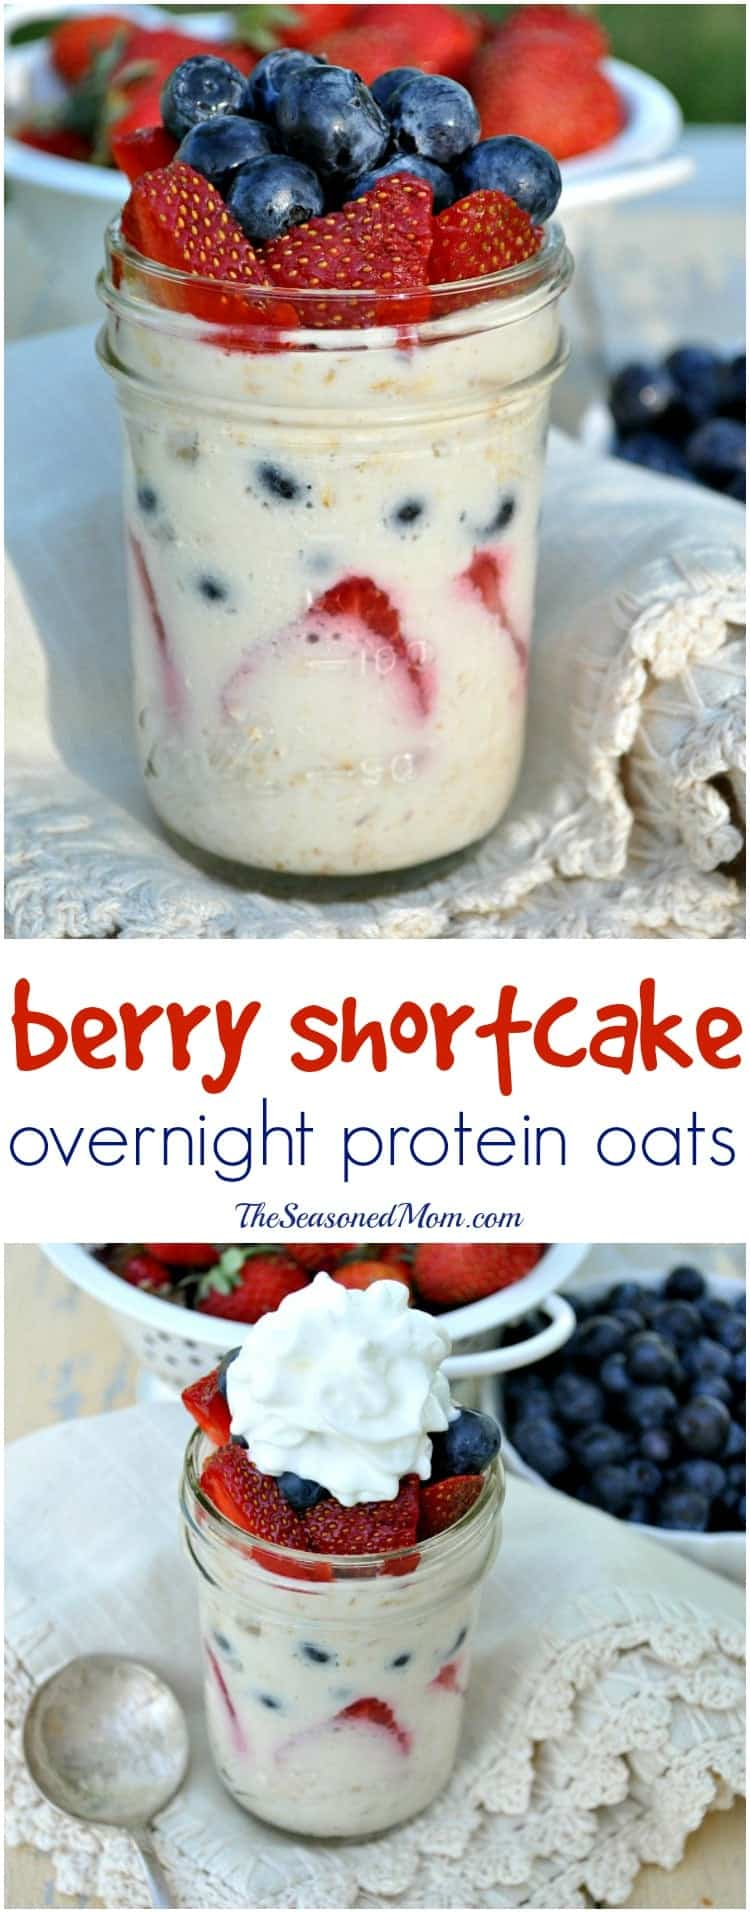 Berry Shortcake Overnight Protein Oats